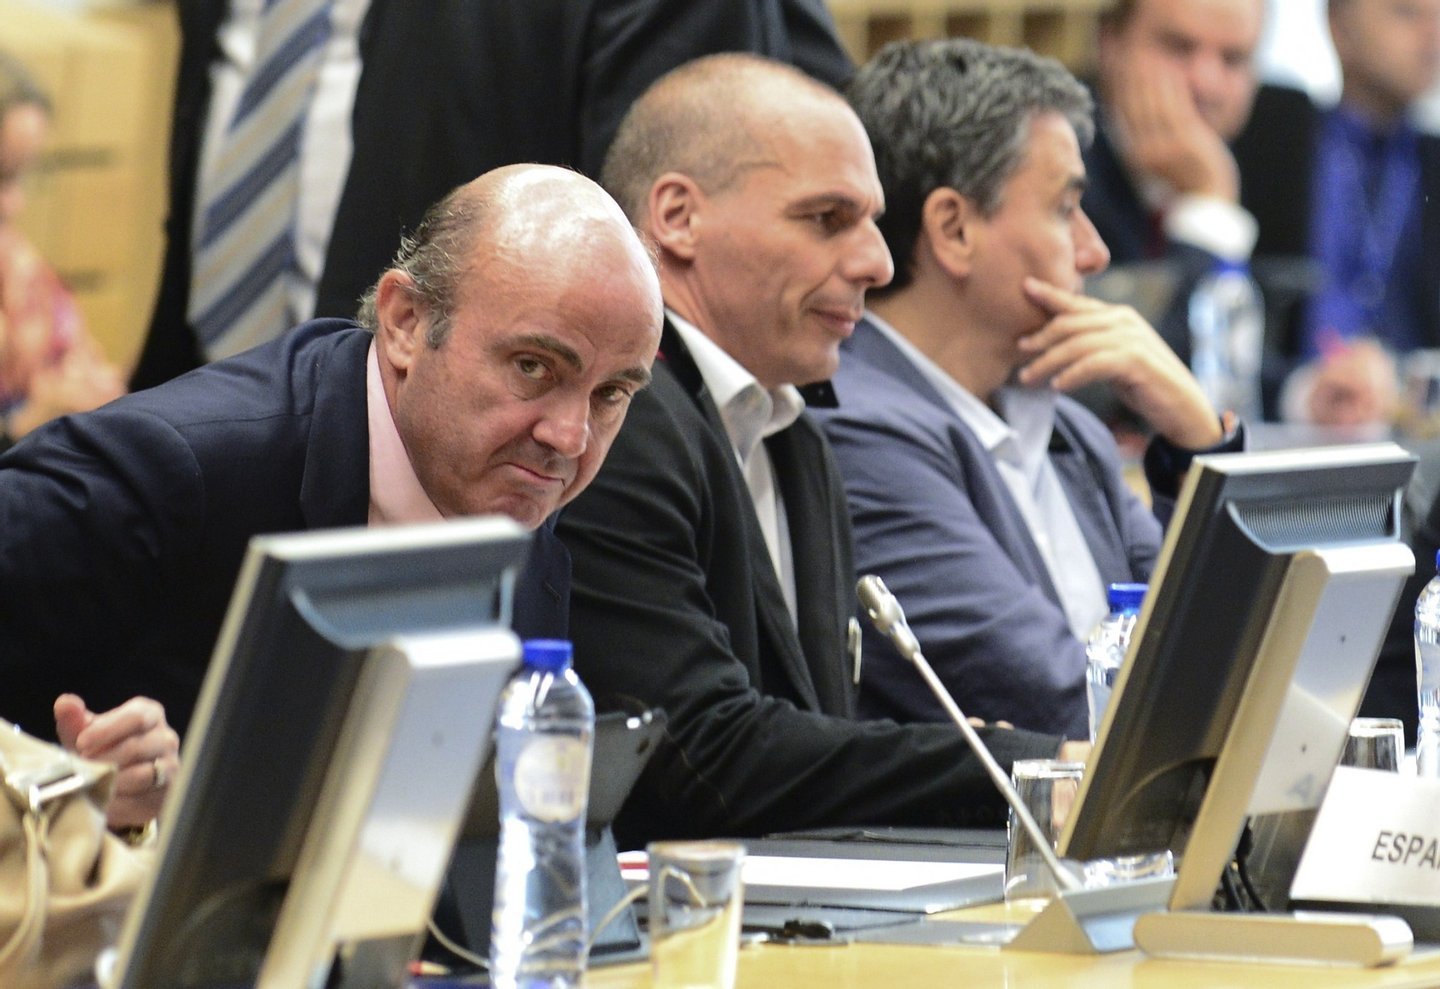 Spanish Economy minister Cristobal Montoro Romero (L) and Greek Finance Minister Yanis Varoufakis (C) attend a Eurogroup Council meeting on June 24, 2015  at the EU Headquarters in Brussels. AFP PHOTO / JOHN THYS        (Photo credit should read JOHN THYS/AFP/Getty Images)